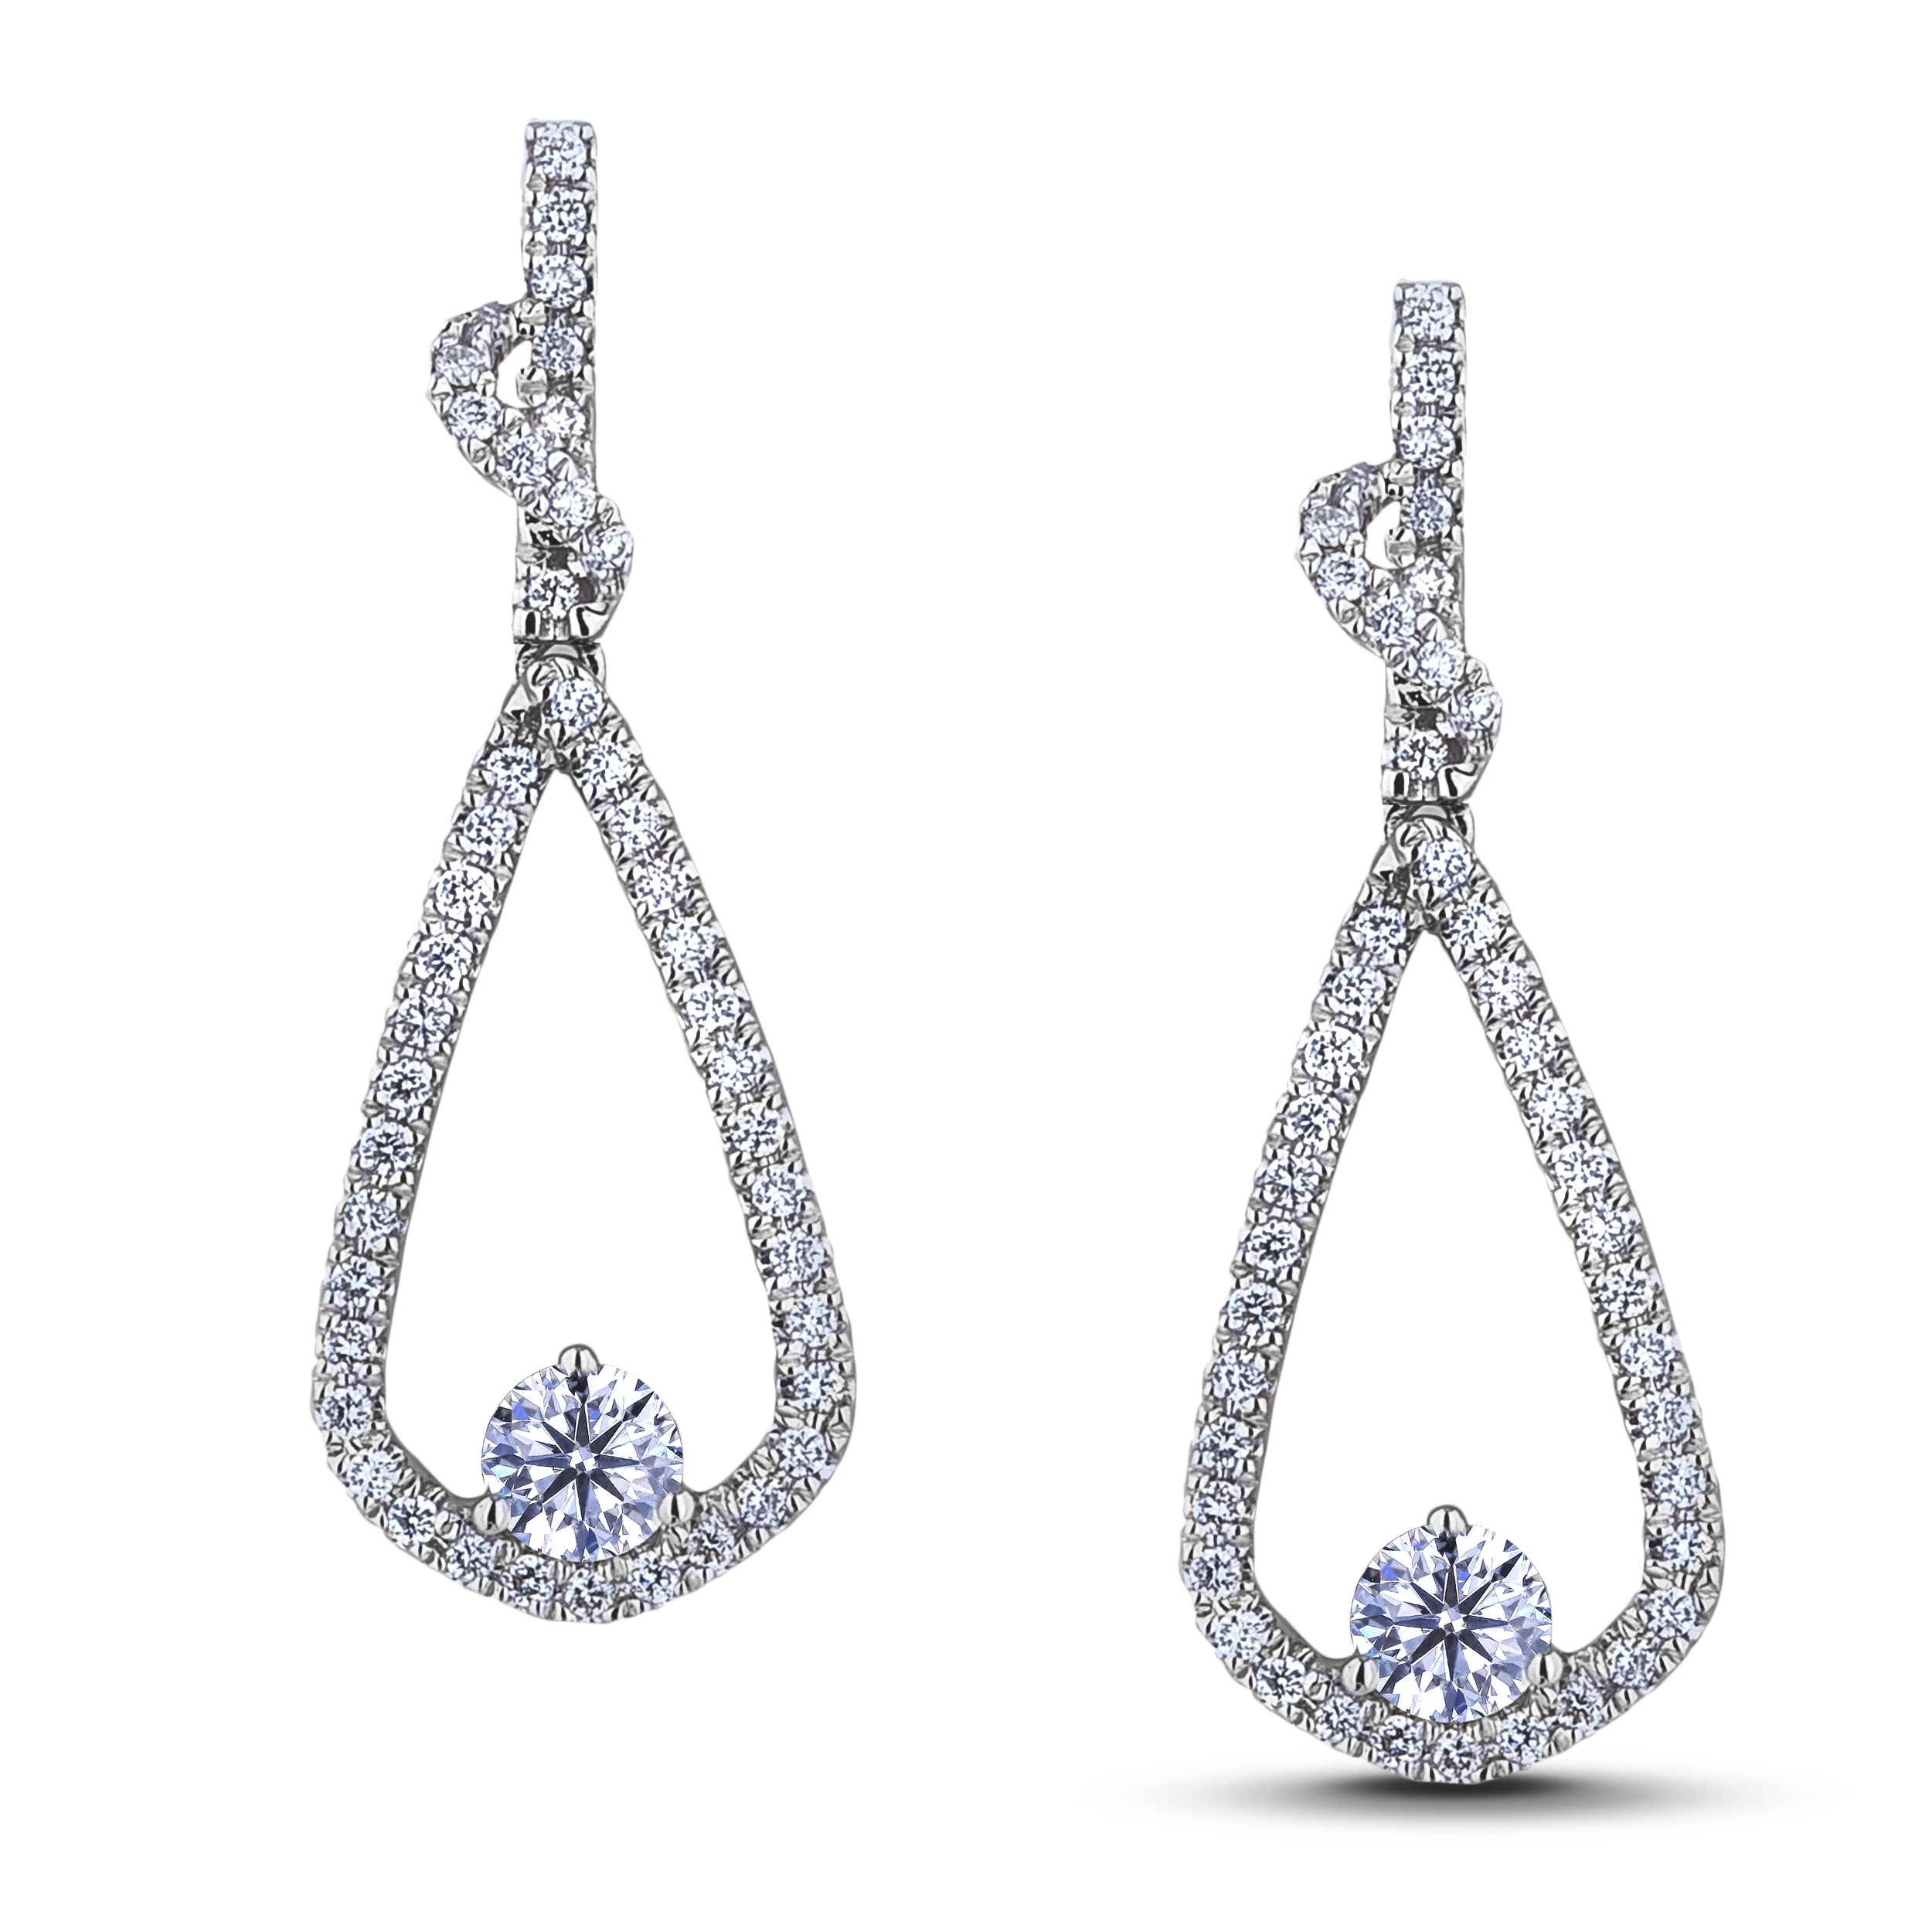 Diamond Dangle Earrings SGE307-315E (Earrings)